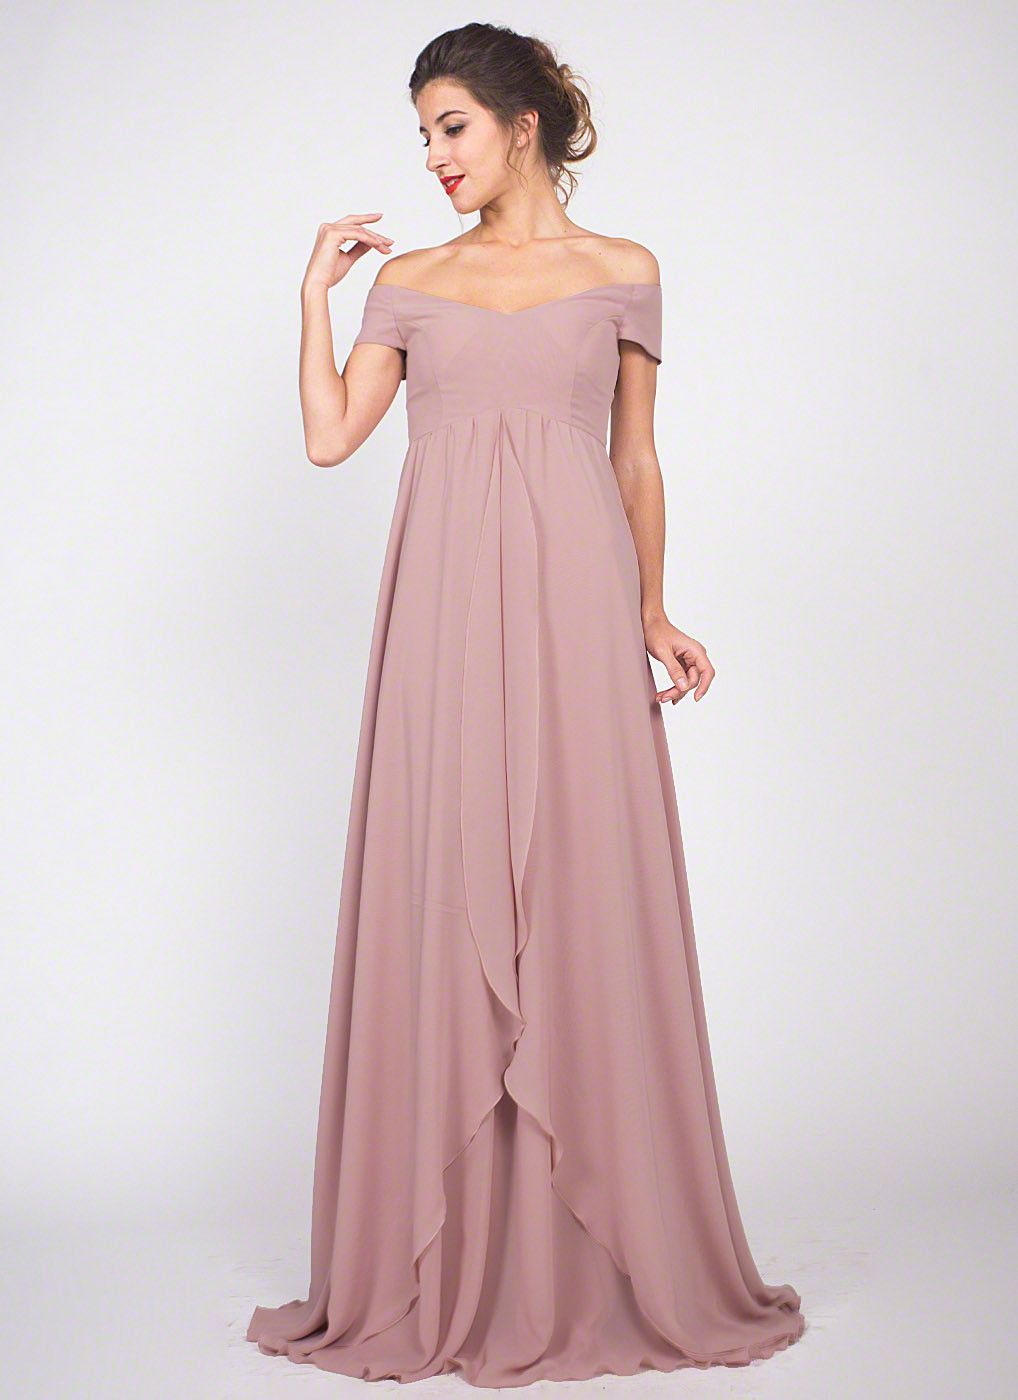 e2d22a94d768 Dusty Rose Pink Chiffon Maxi Dress Bridesmaid Dress Off Shoulder Chiffon  Prom Dress with Asymmetric Layered Skirt for Maid of Honor Off shoulder  design ...